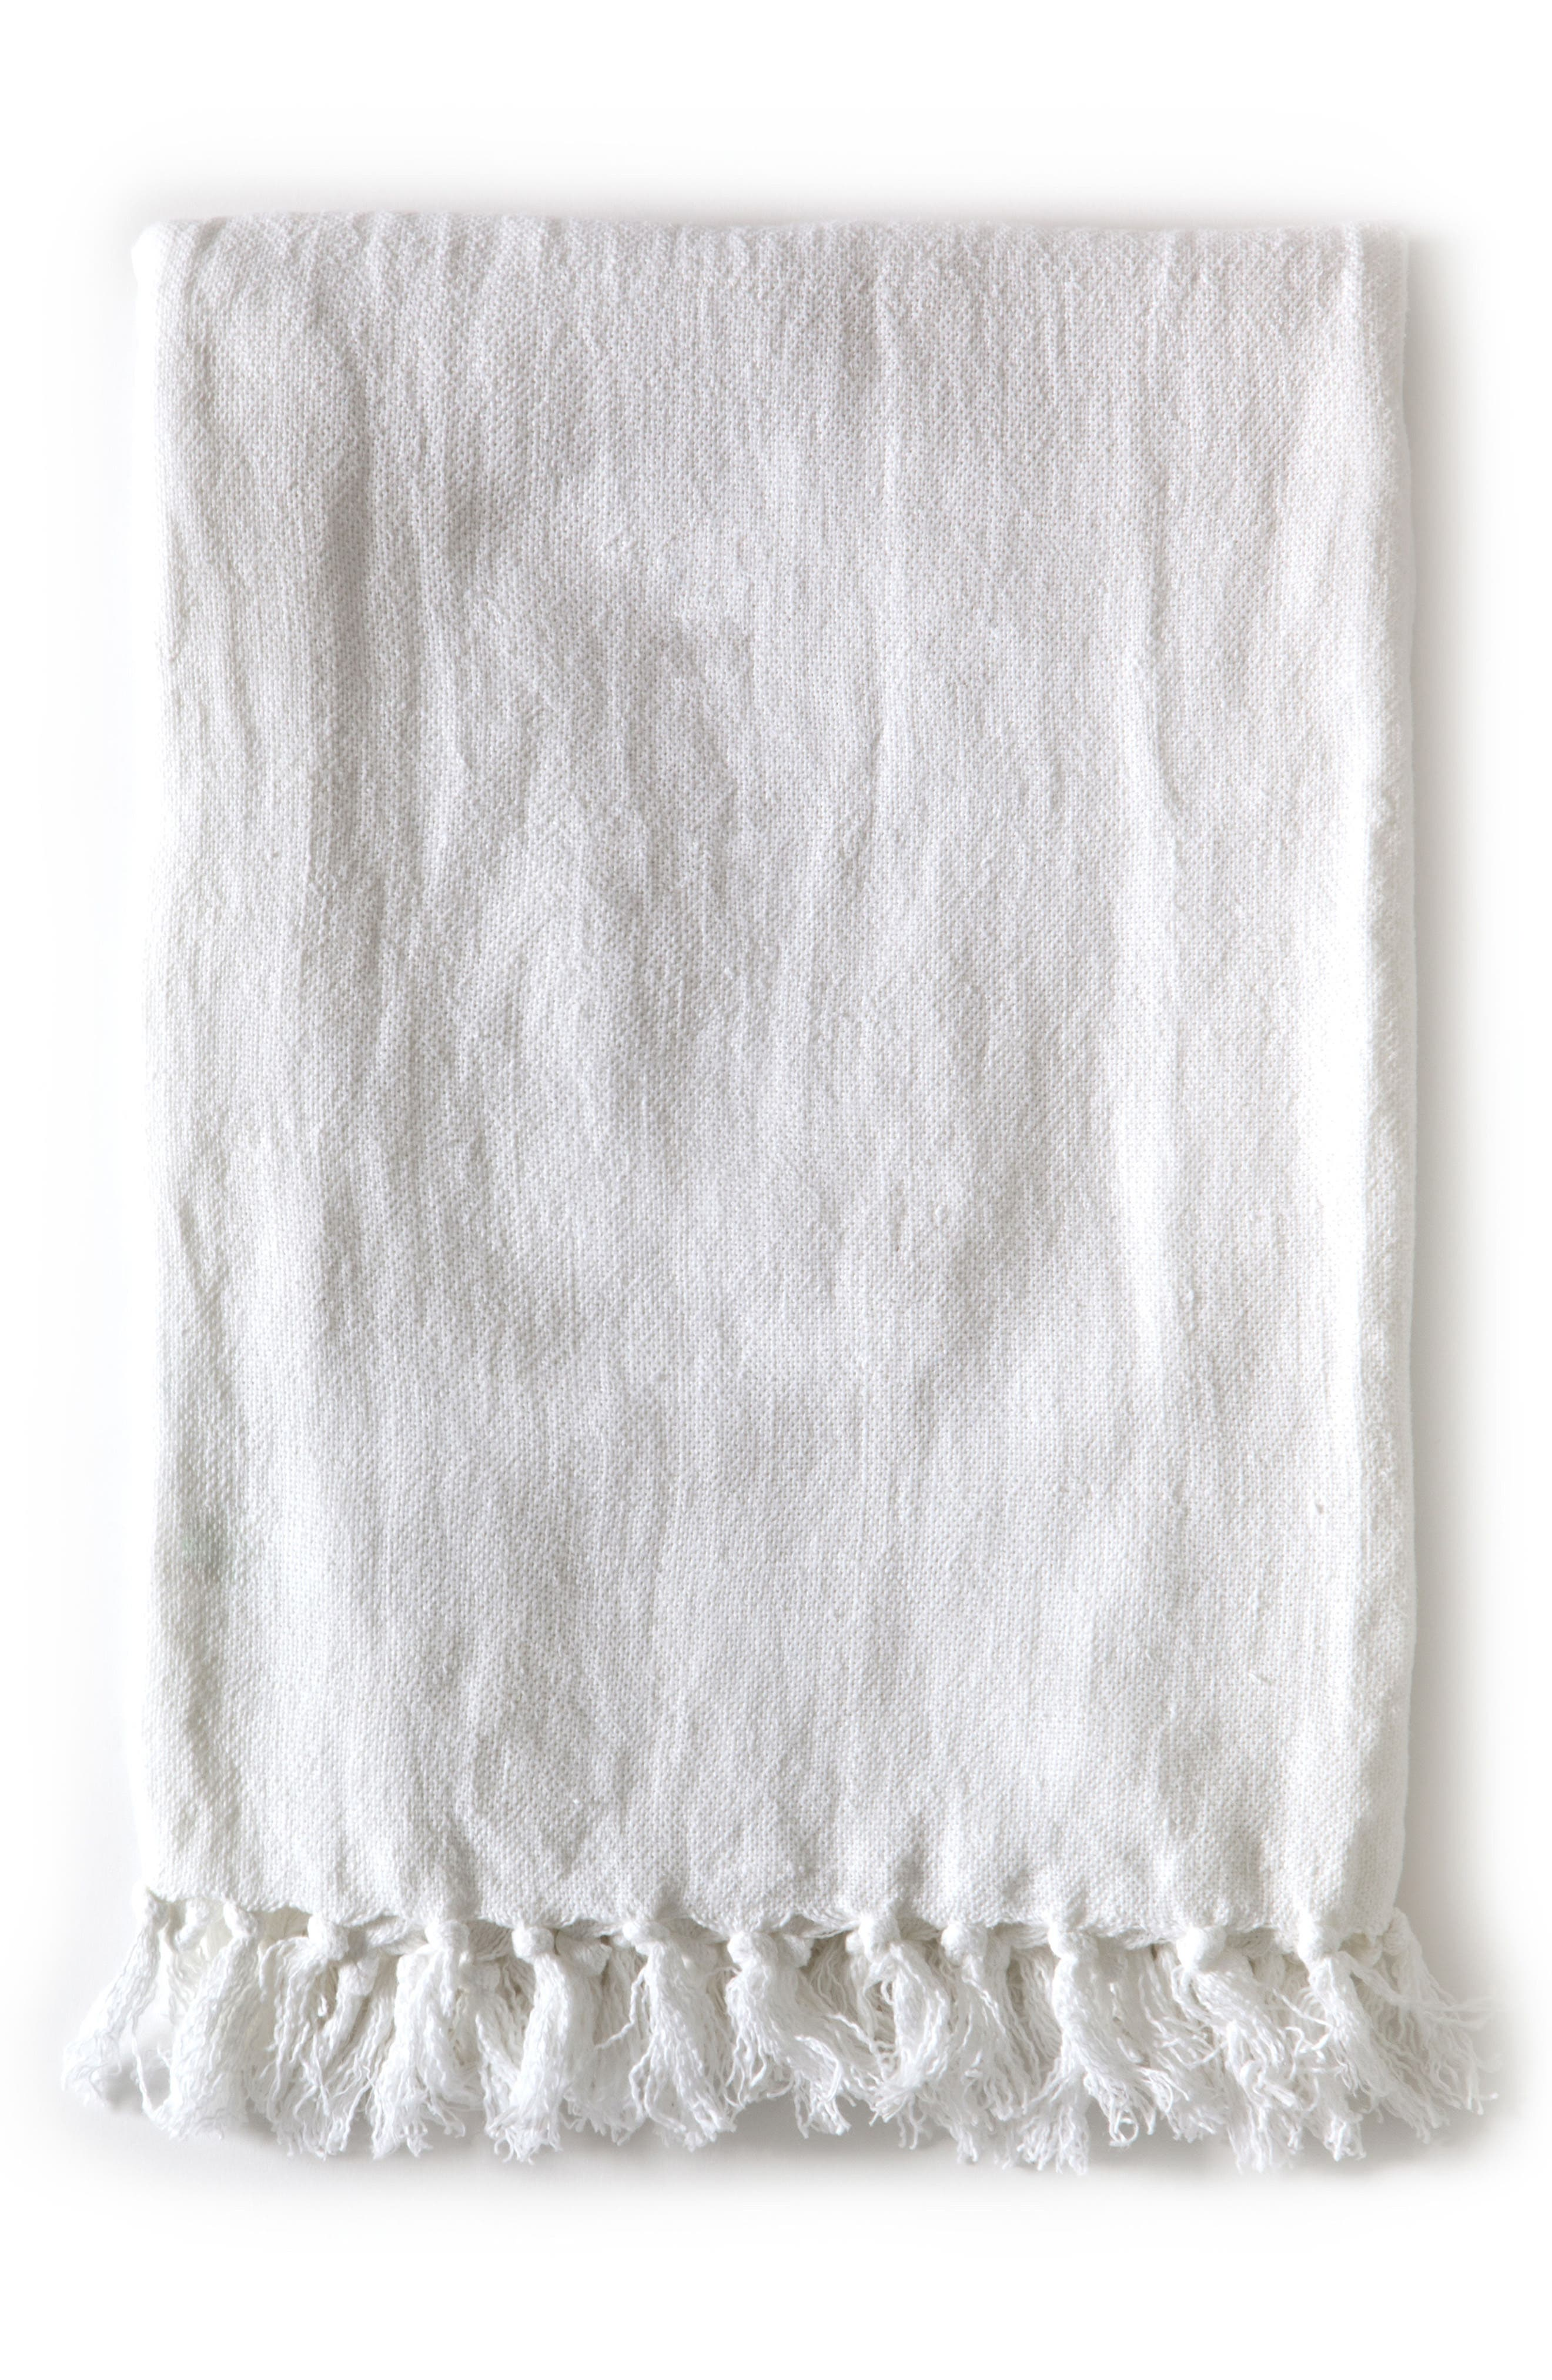 A hand-loomed, heavyweight linen throw blanket channels modern minimalism while perfectly complementing any bedroom decor. Style Name: Pom Pom At Home Montauk Big Throw Blanket. Style Number: 5437481. Available in stores.